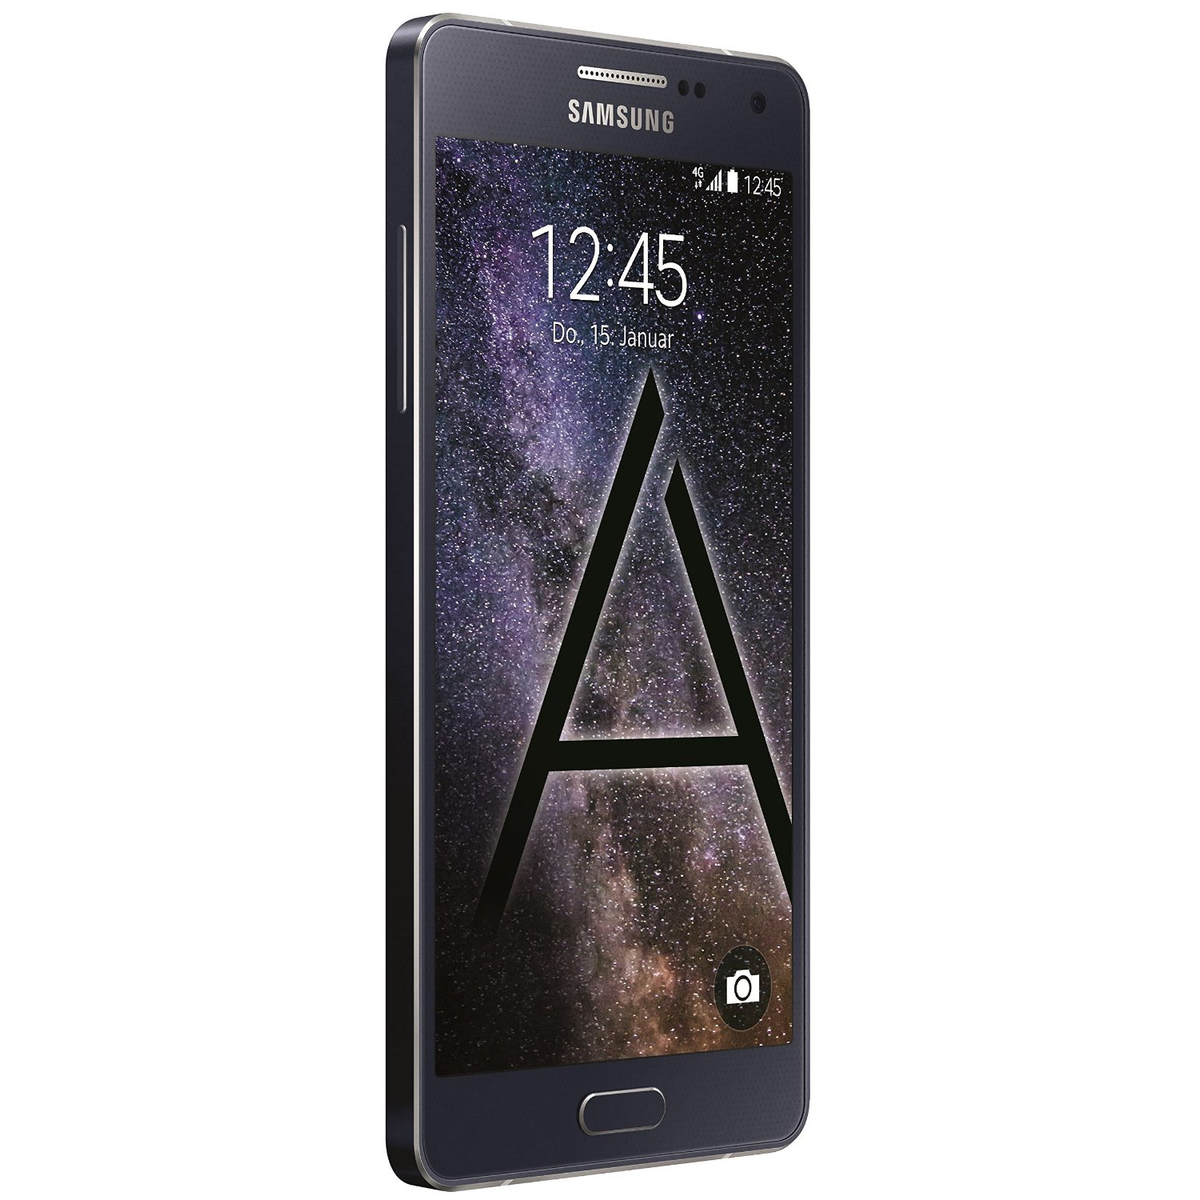 Samsung Galaxy A5 Smartphone midnight black #gut